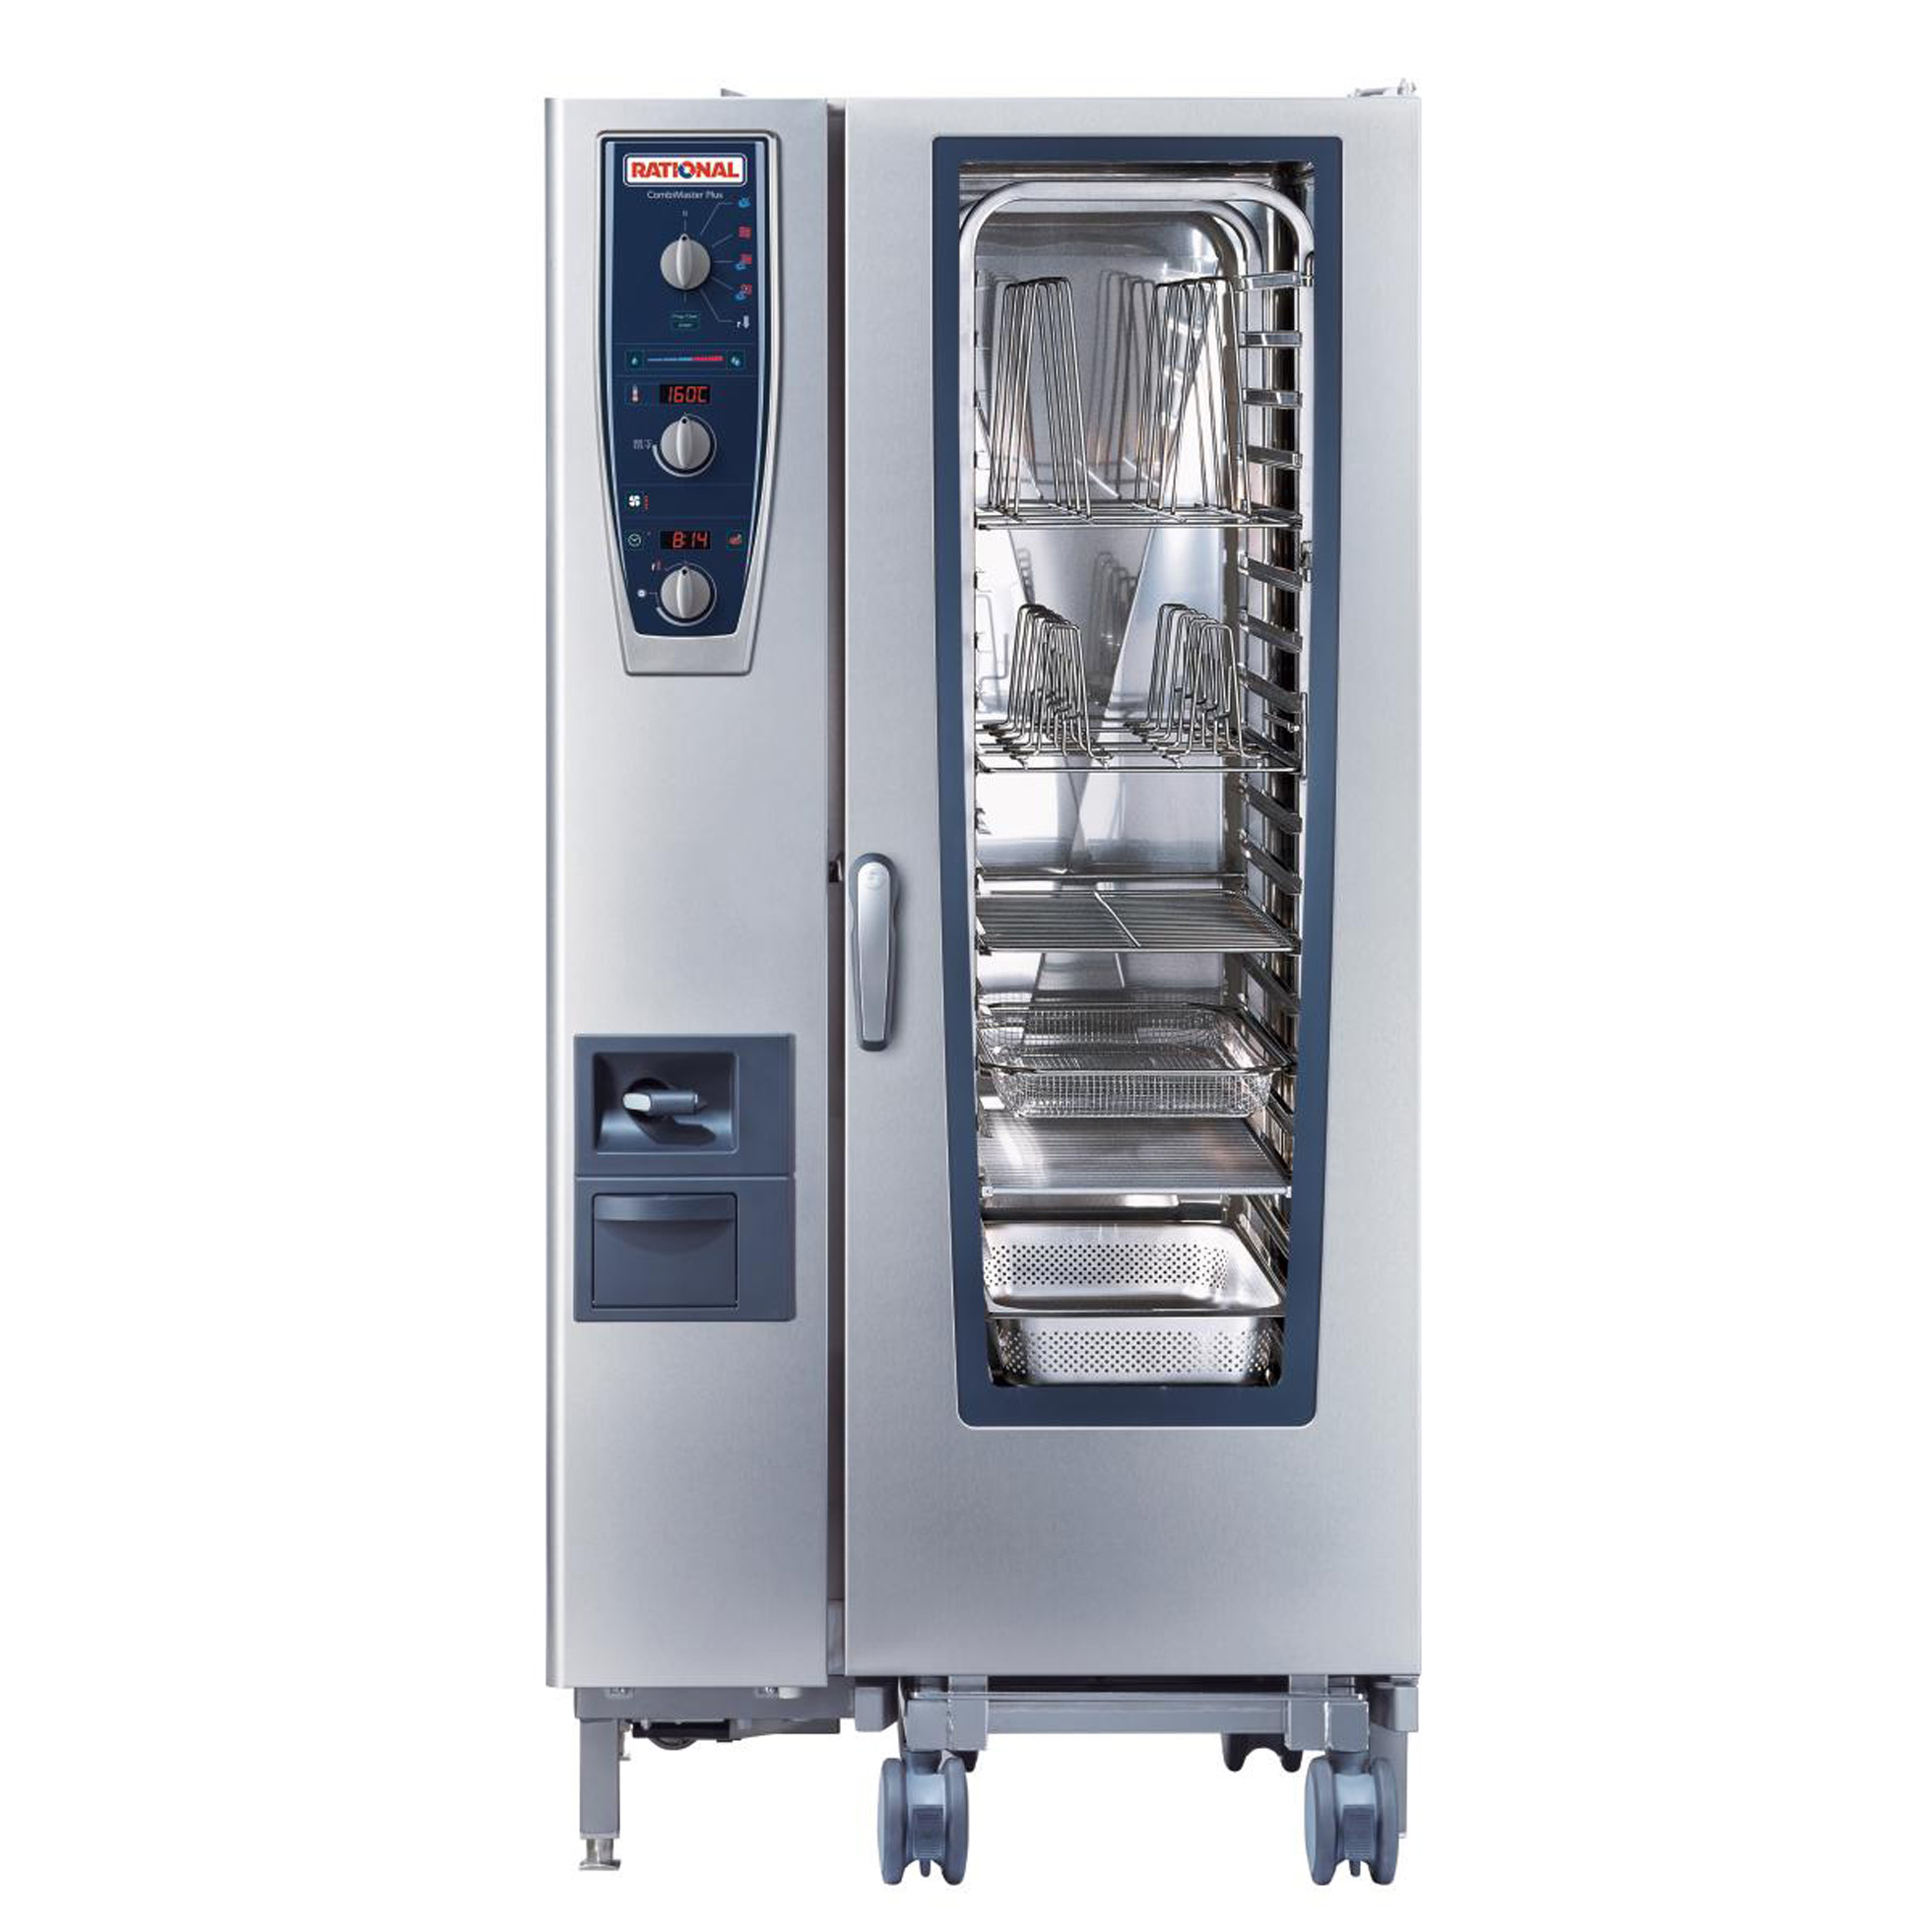 RATIONAL B219106.12.202 combi oven, electric